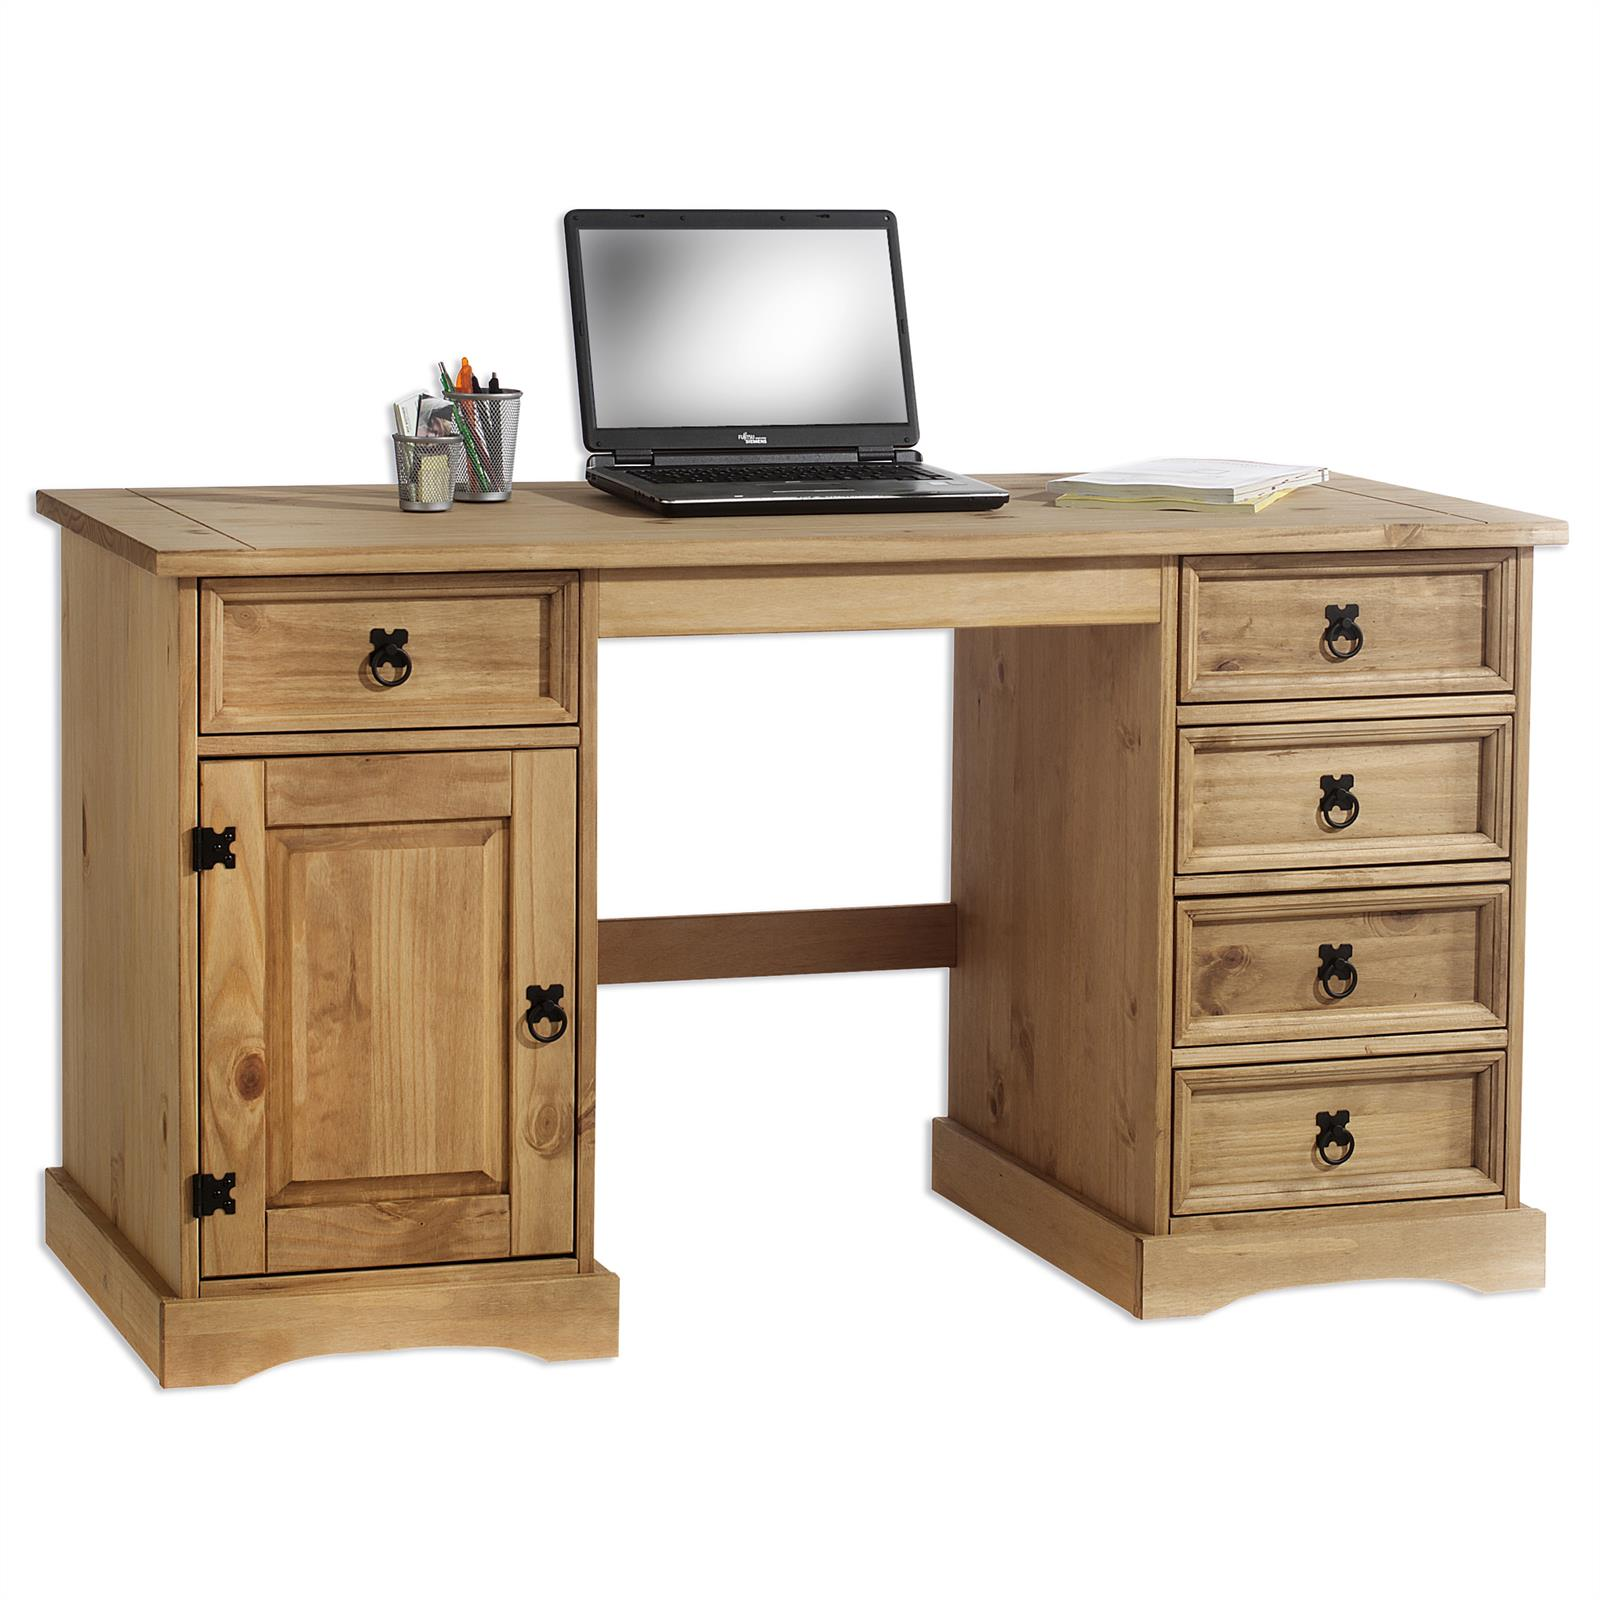 Bureau en pin tequila style mexicain finition cir e mobil meubles - Bureau en pin massif ...